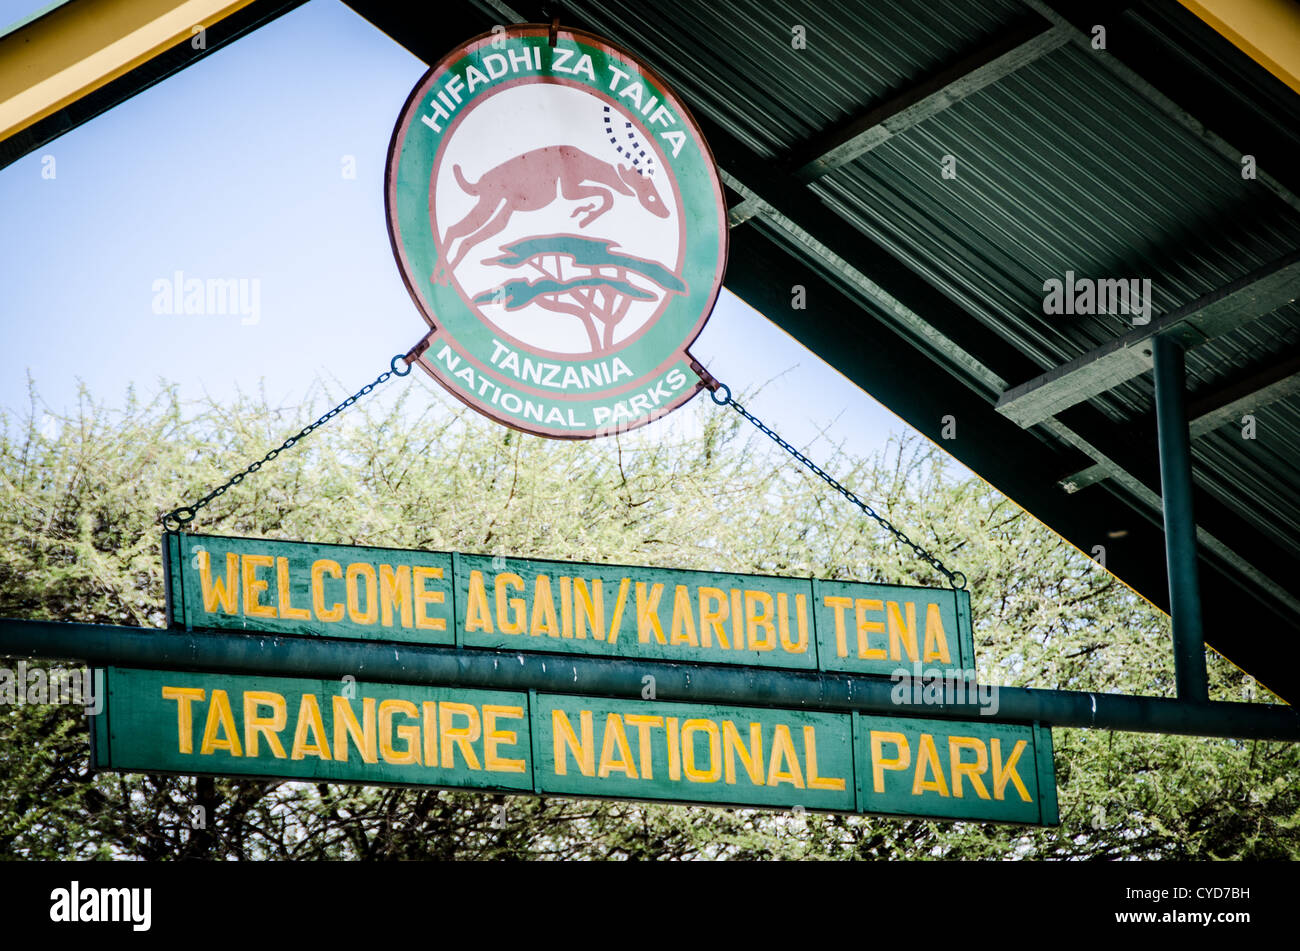 Sign overhead at the main entrance to Tarangire National Park in northern Tanzania. - Stock Image